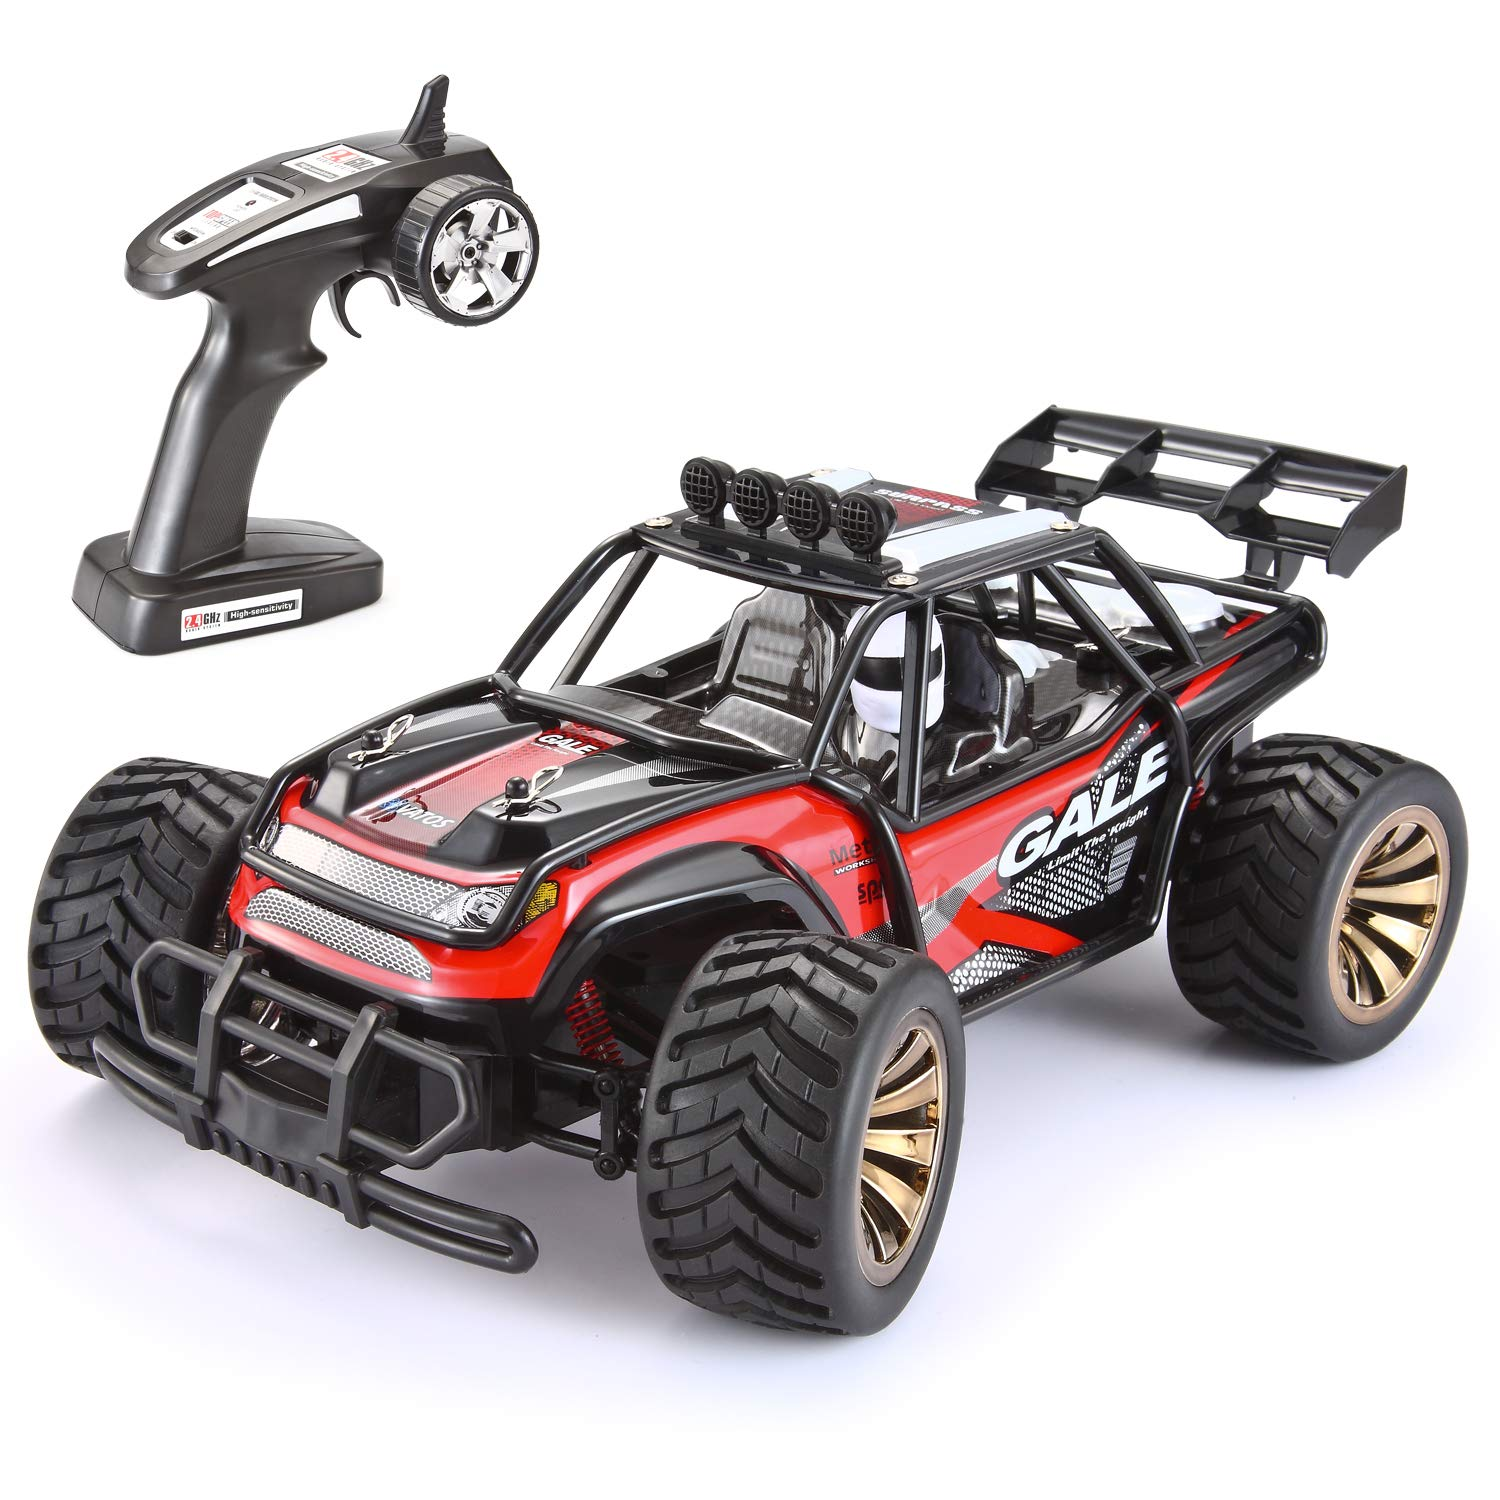 RC Car,Vatos Remote Control Car Electric Racing Car Off Road 1:16 Scale Desert Buggy Vehicle 2.4GHz 50M 2WD High Speed Electric Race Monster Truck Hobby Rock Electric Buggy Crawler Best Toy Car